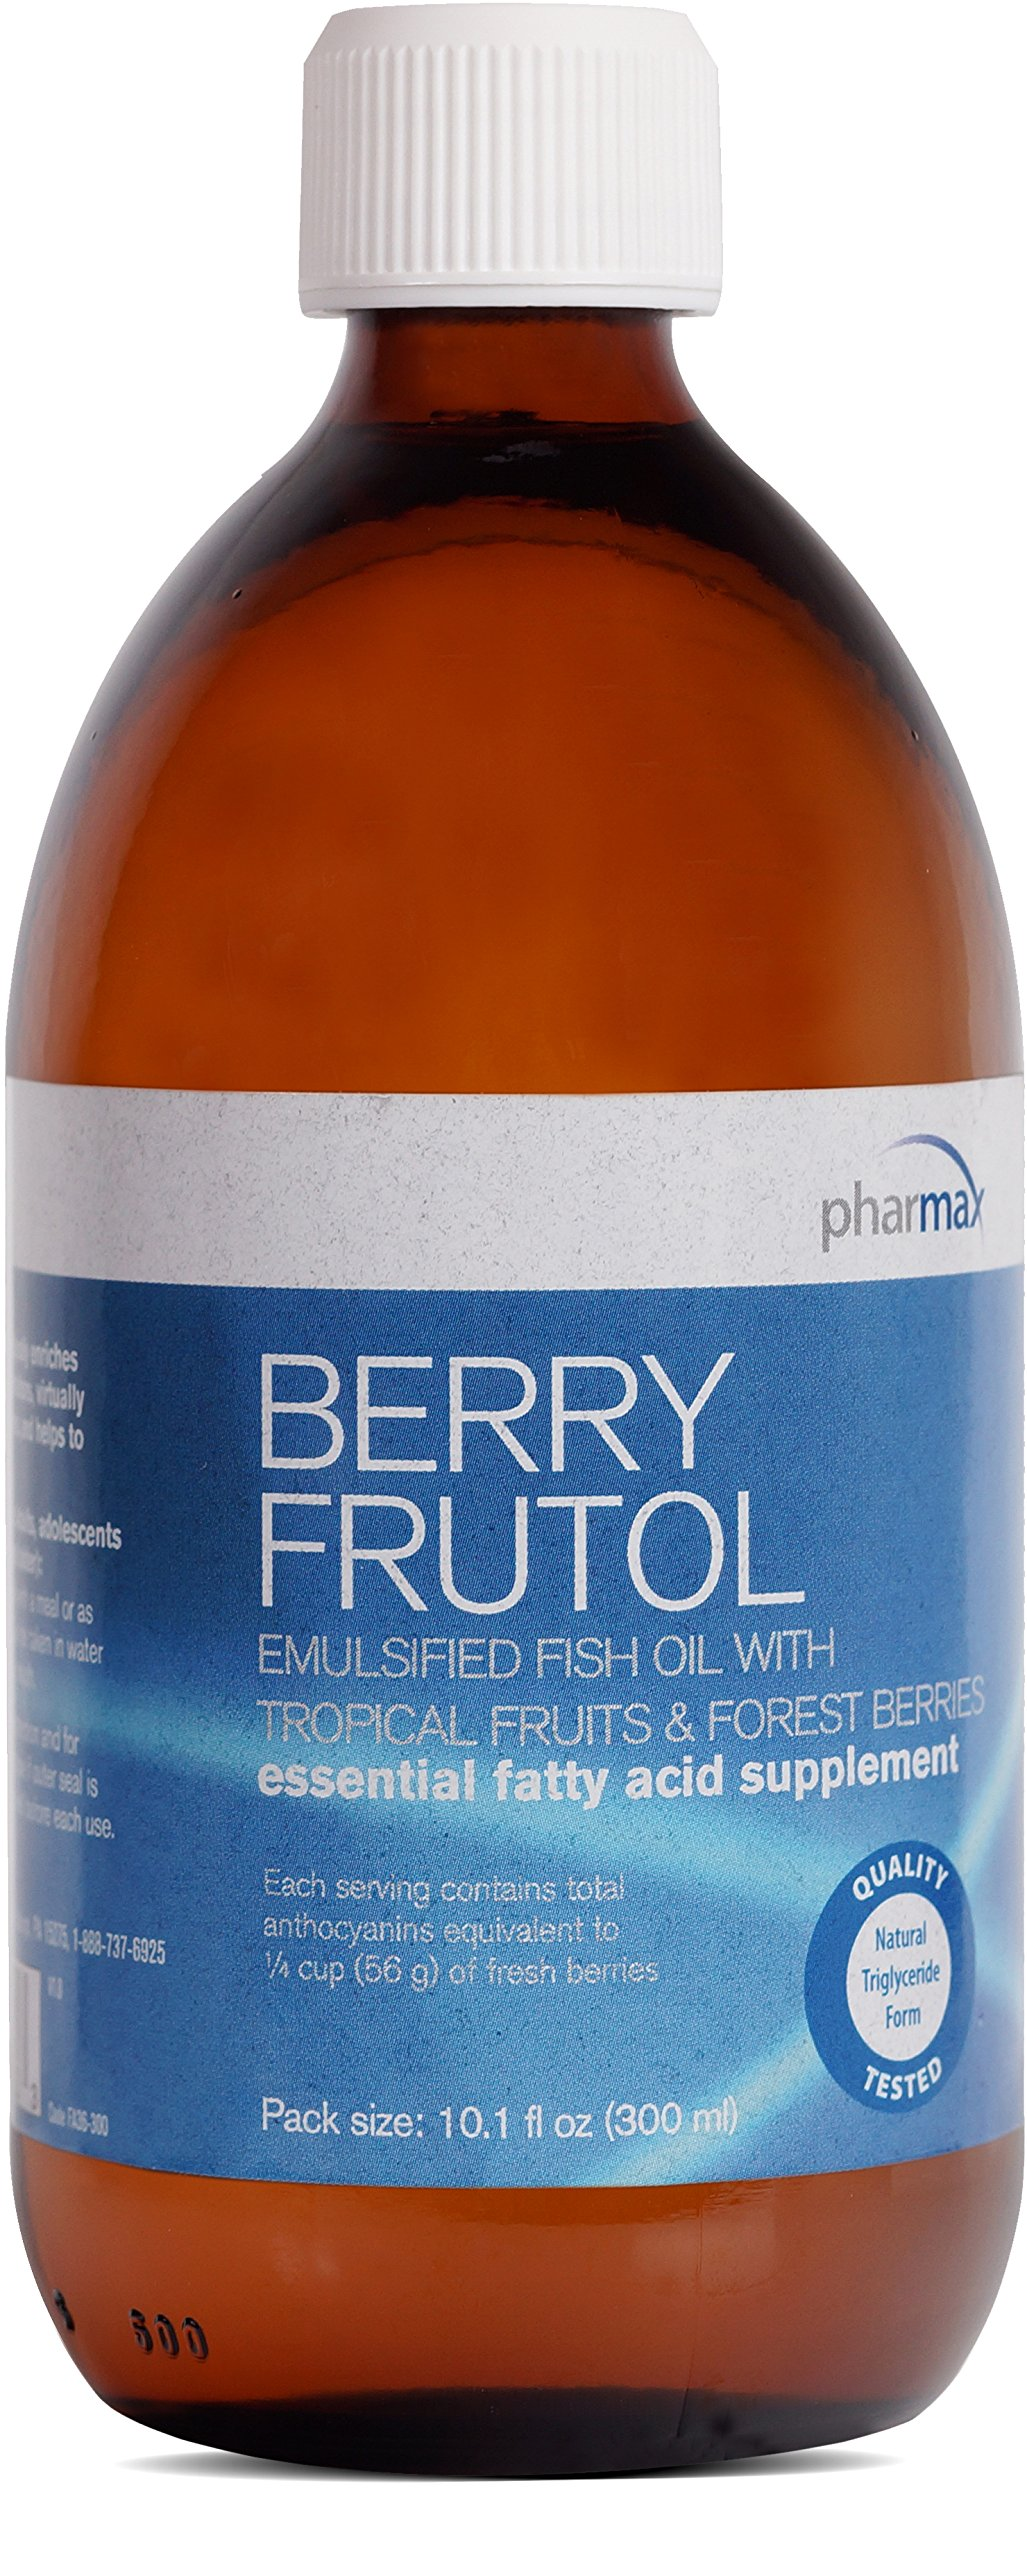 Pharmax - Berry Frutol - Fish Oil for Omega Fatty Acids, Cognitive Health, and Cardiovascular Support* - 10.1 fl oz (300 ml)